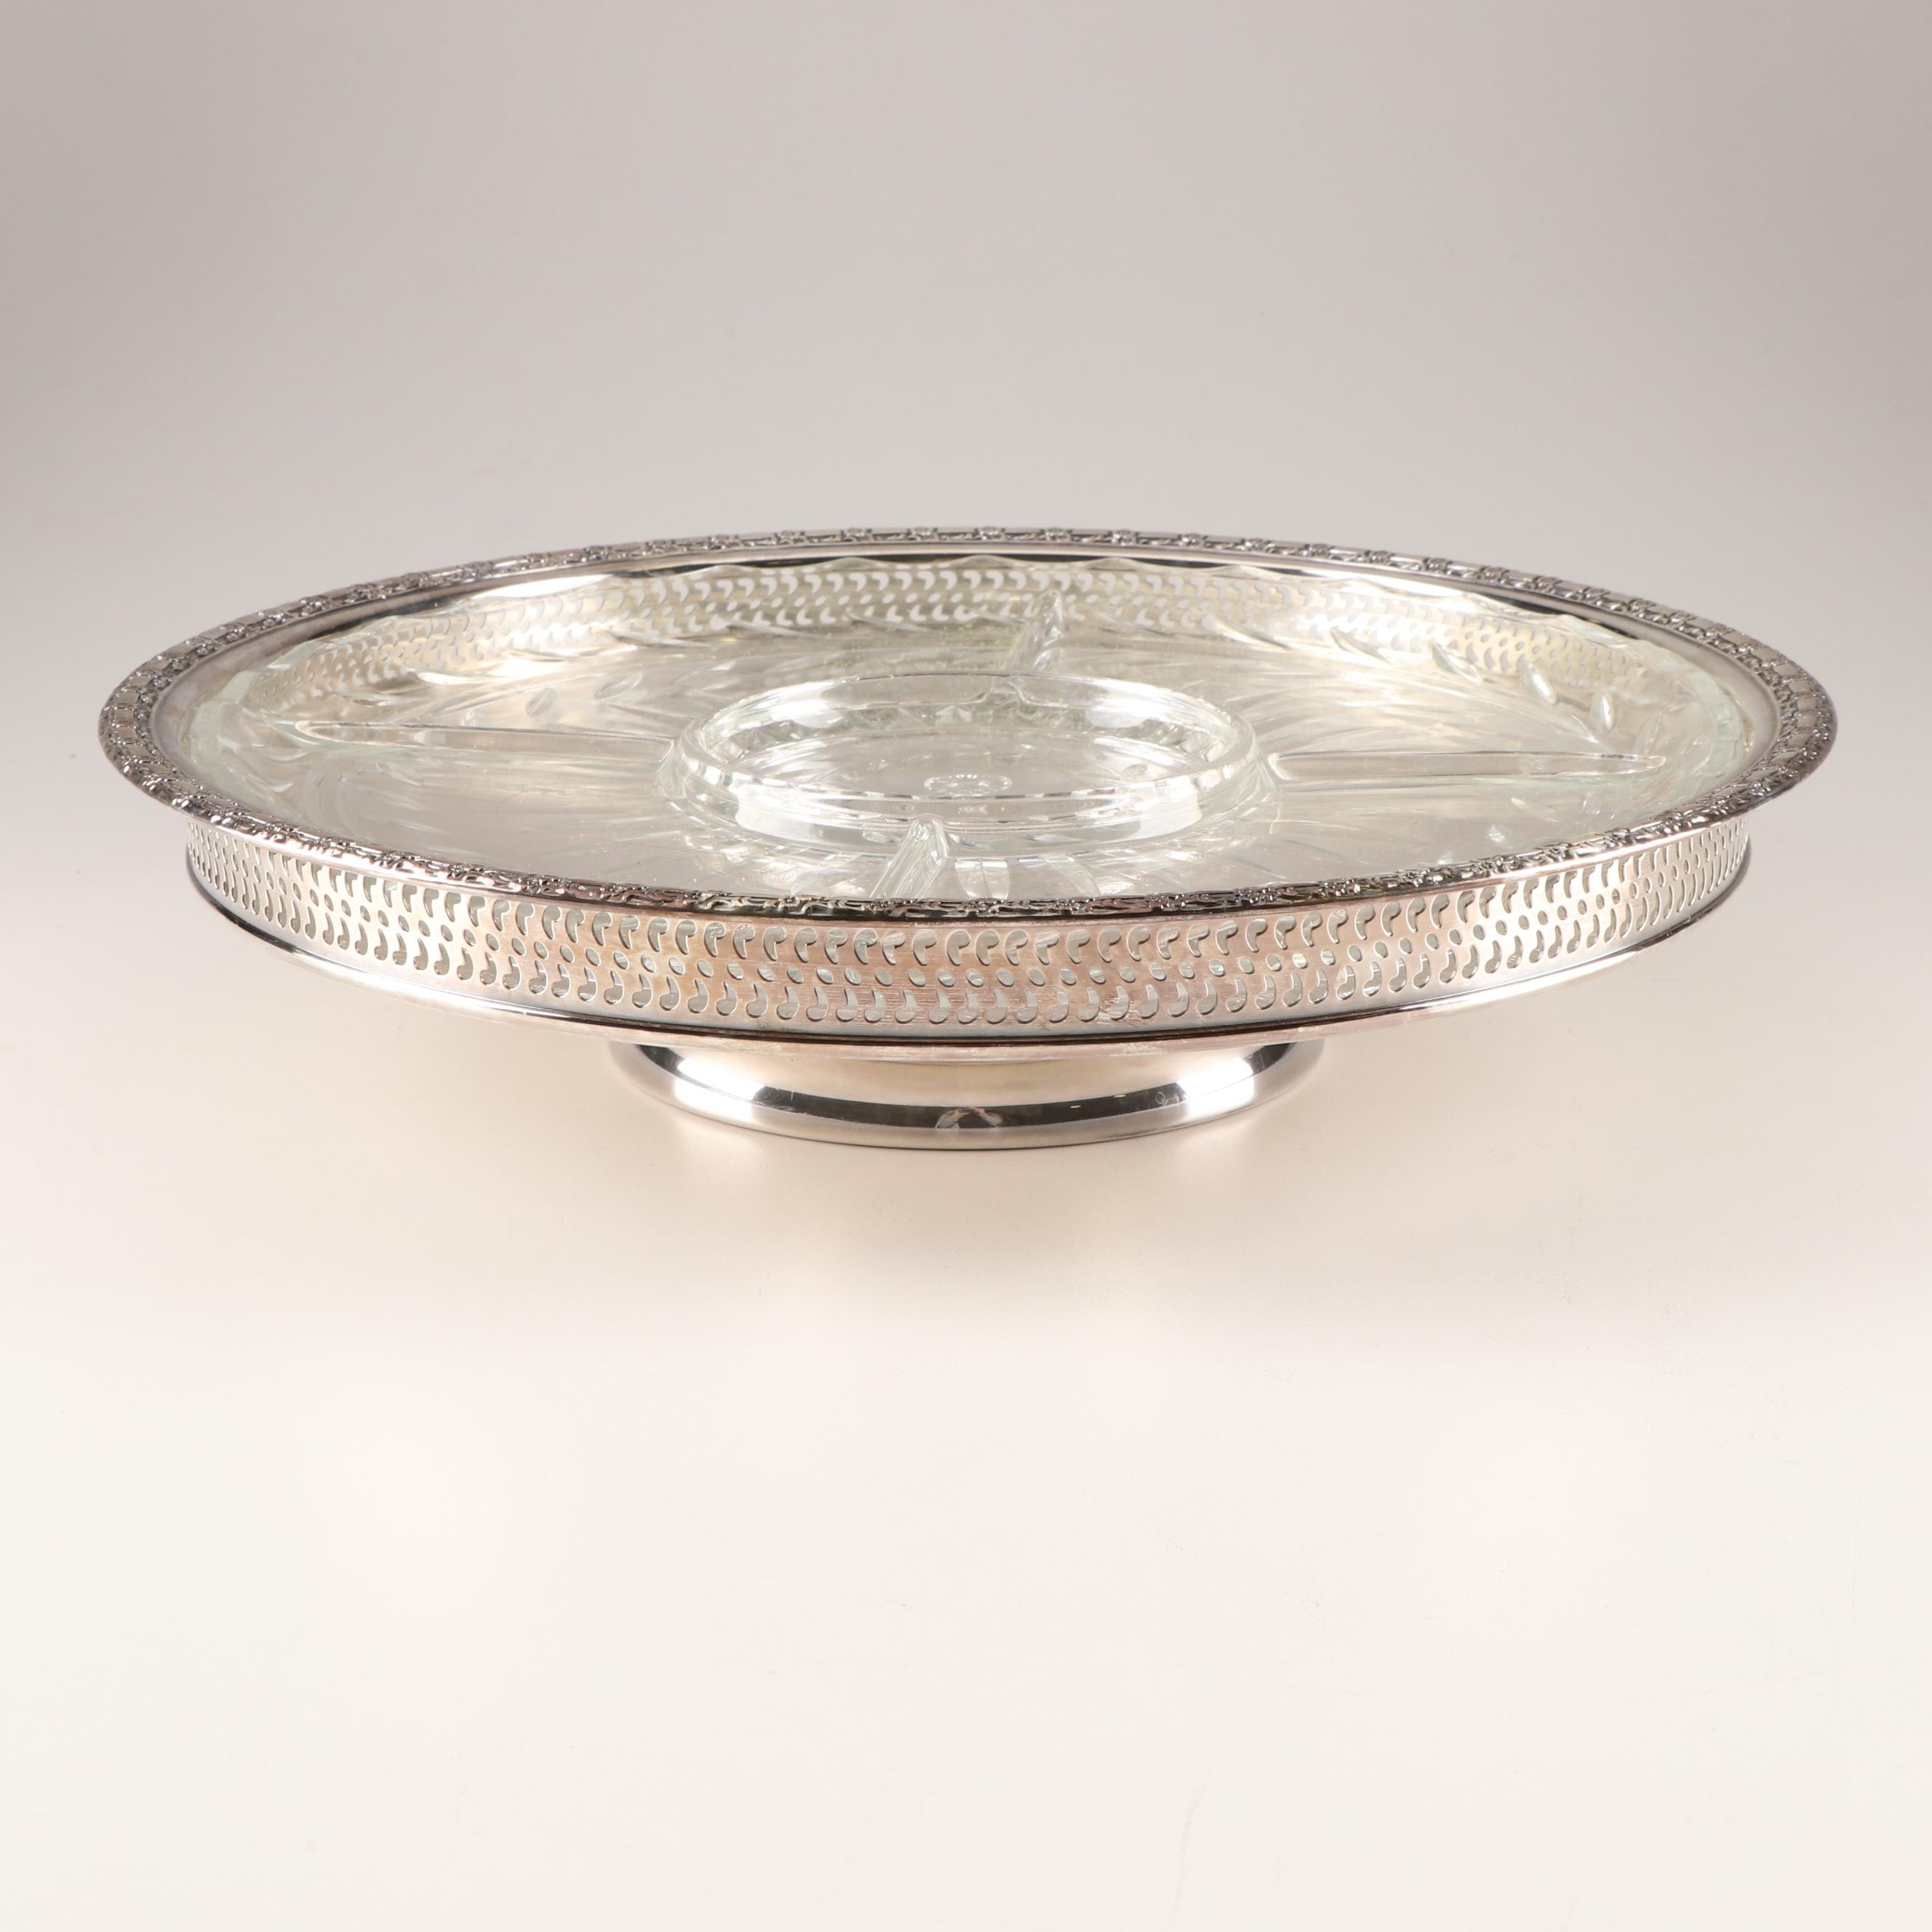 Plated Silver and Cut Glass Lazy Susan Server